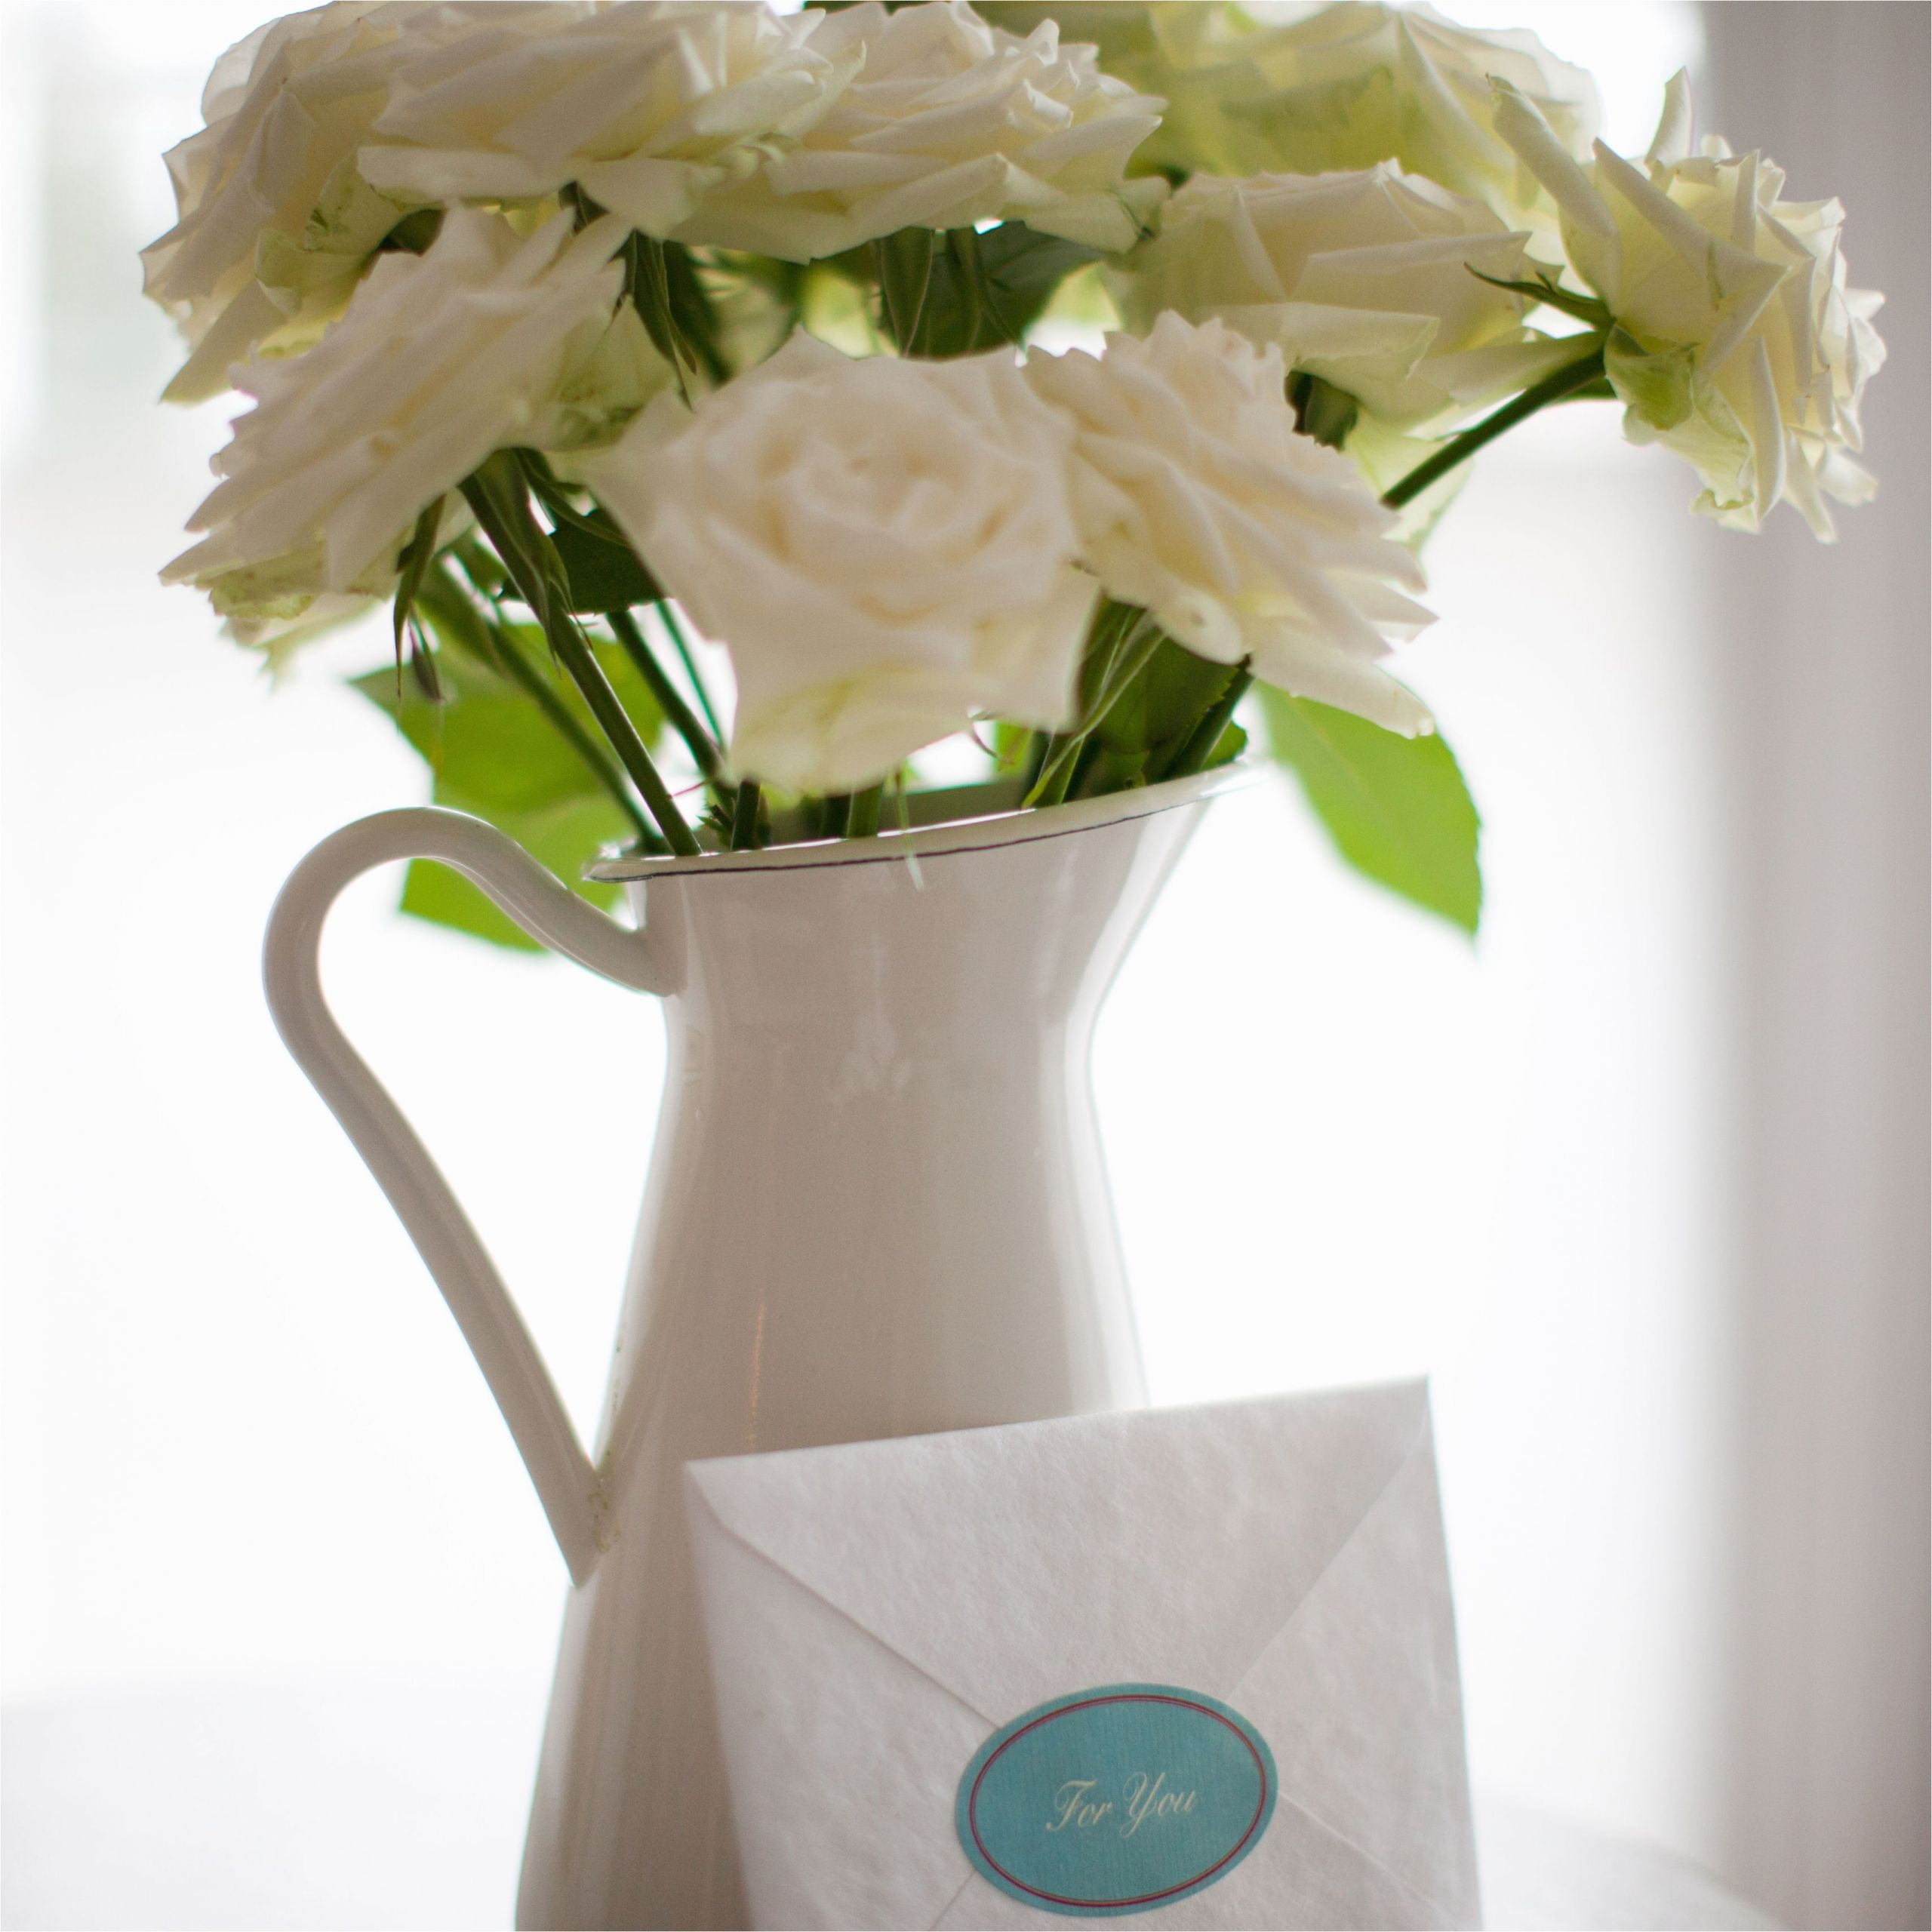 card leaning against white rose bouquet in pitcher 168683856 58d9361e3df78c5162d6ea1b jpg